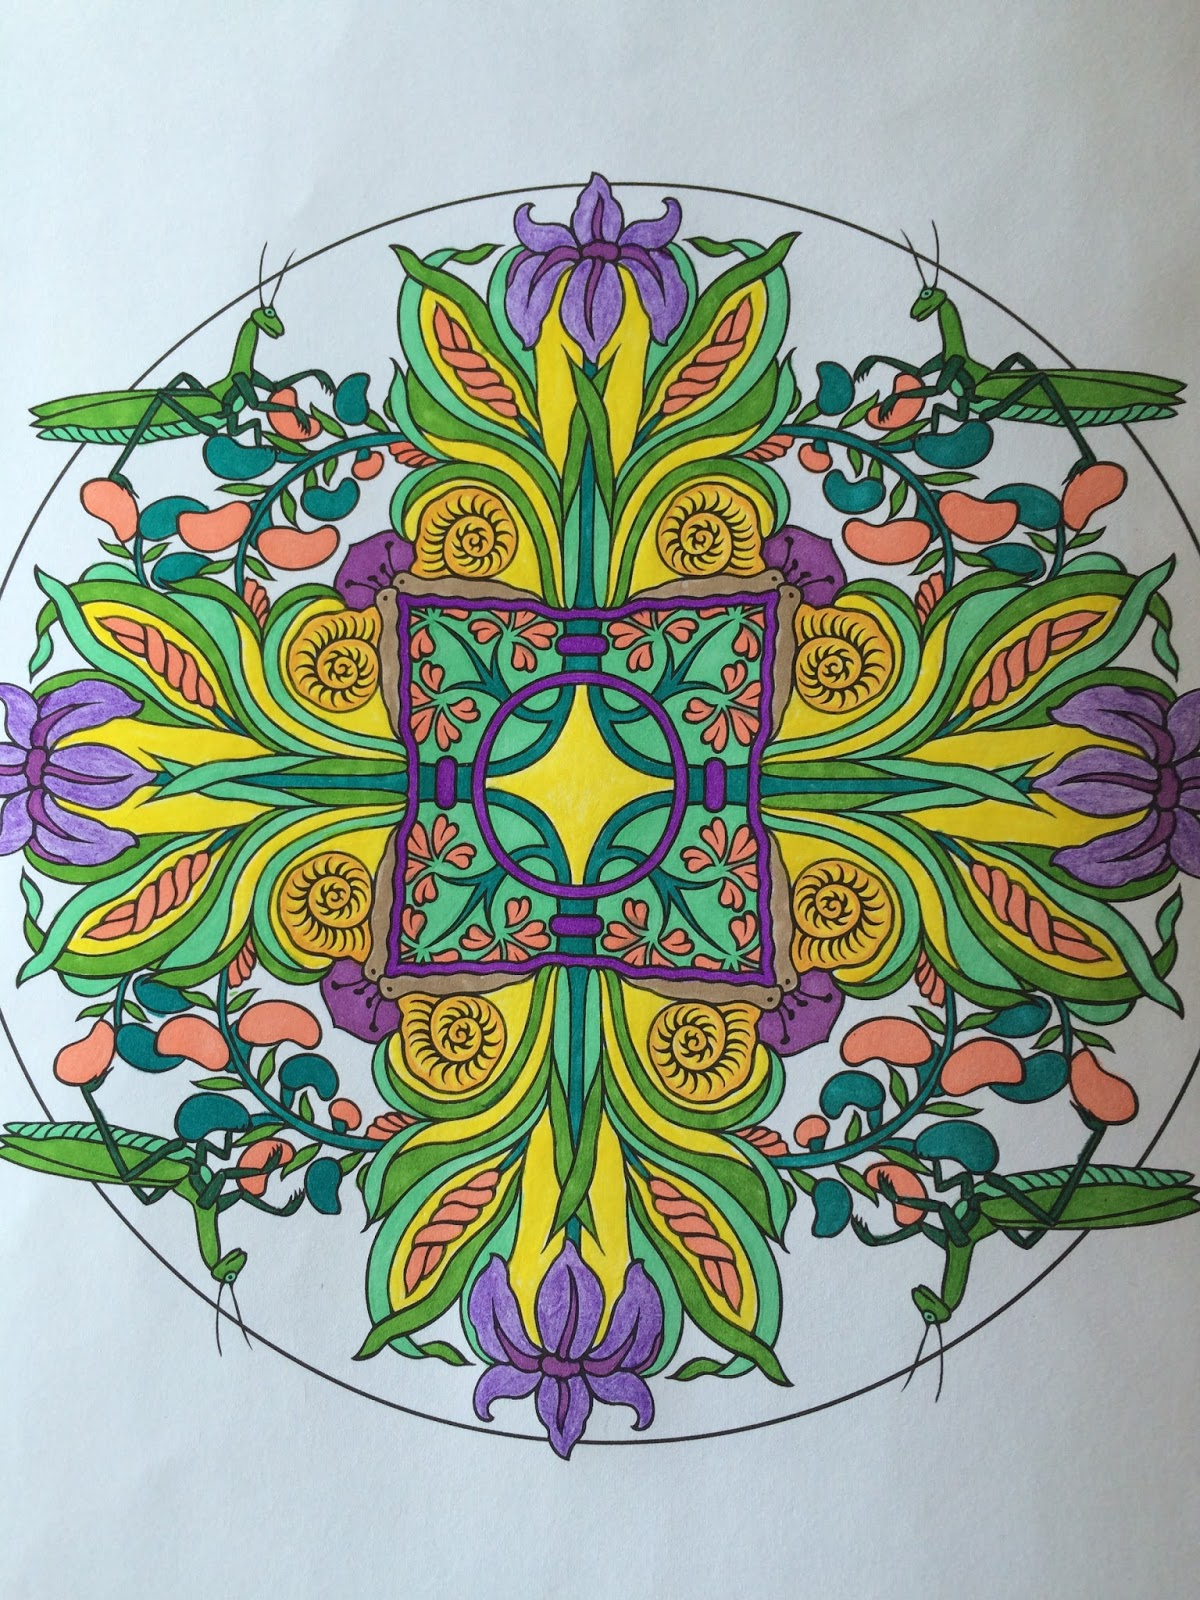 Another Mandala Created By The Jersey Grandpa